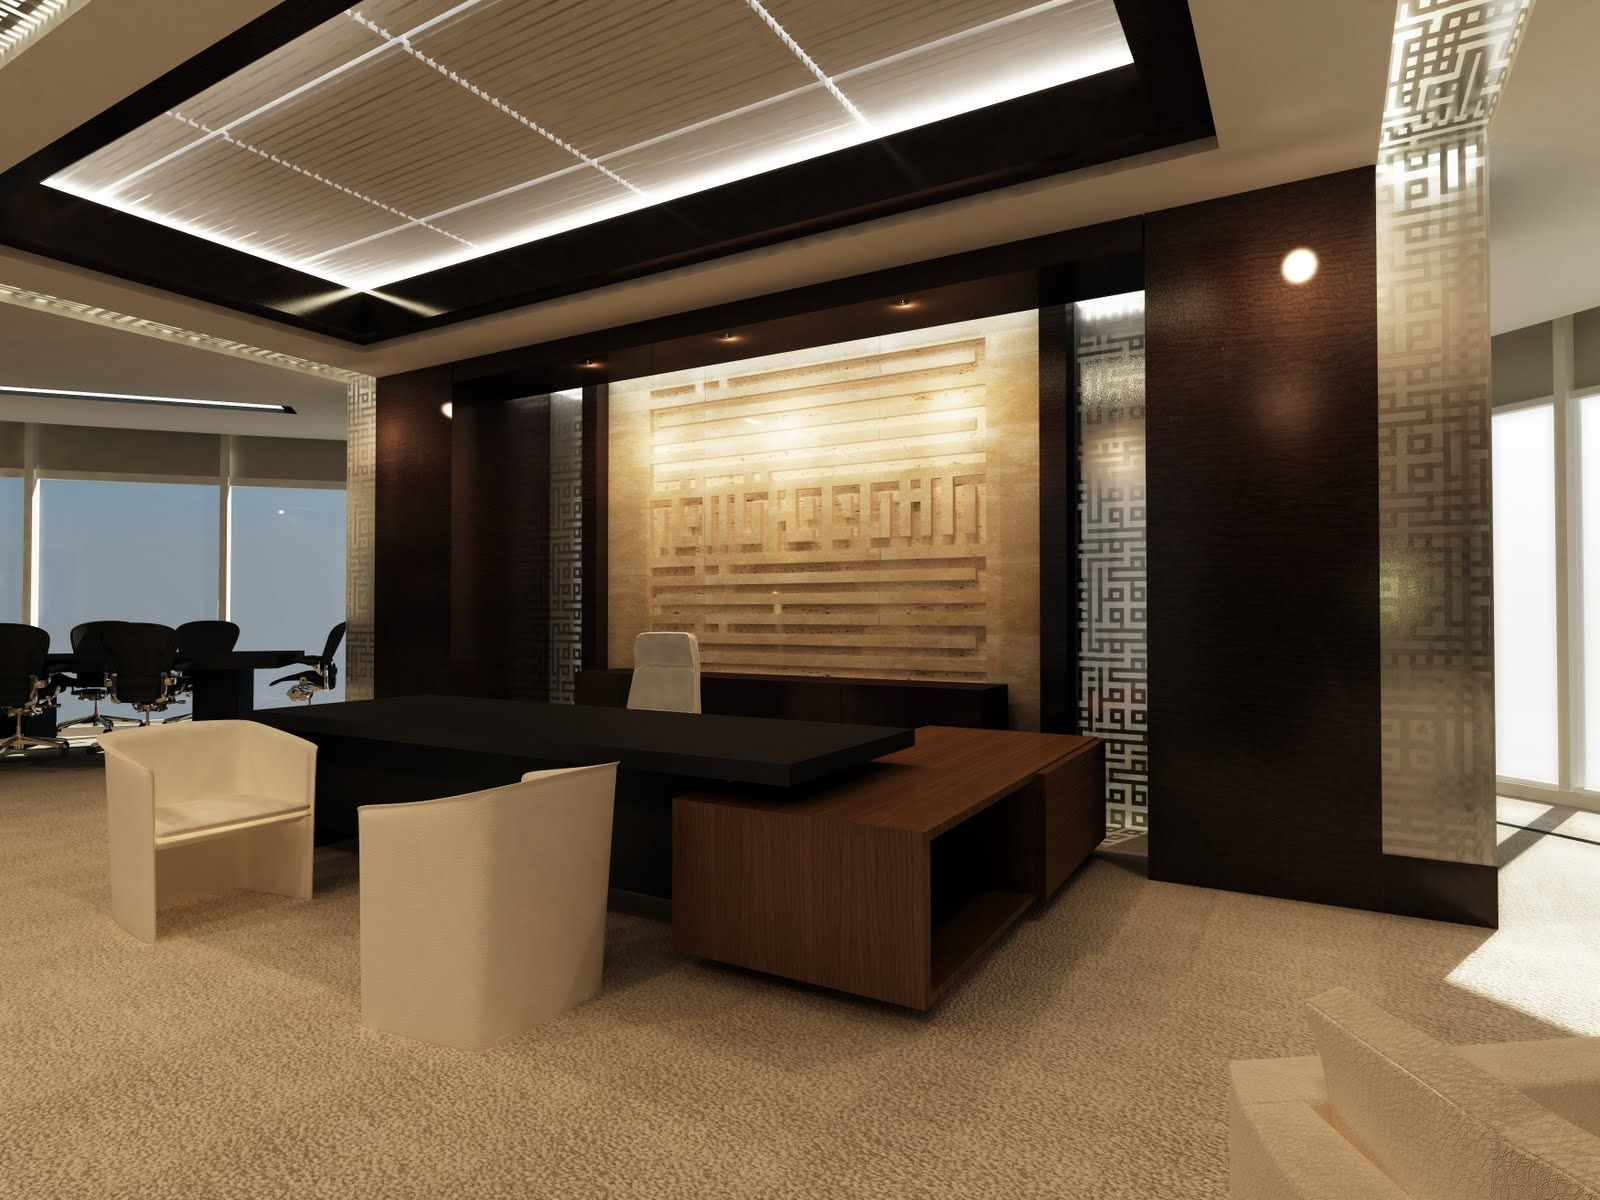 Office interior design intended for office interior design for Best interior furniture